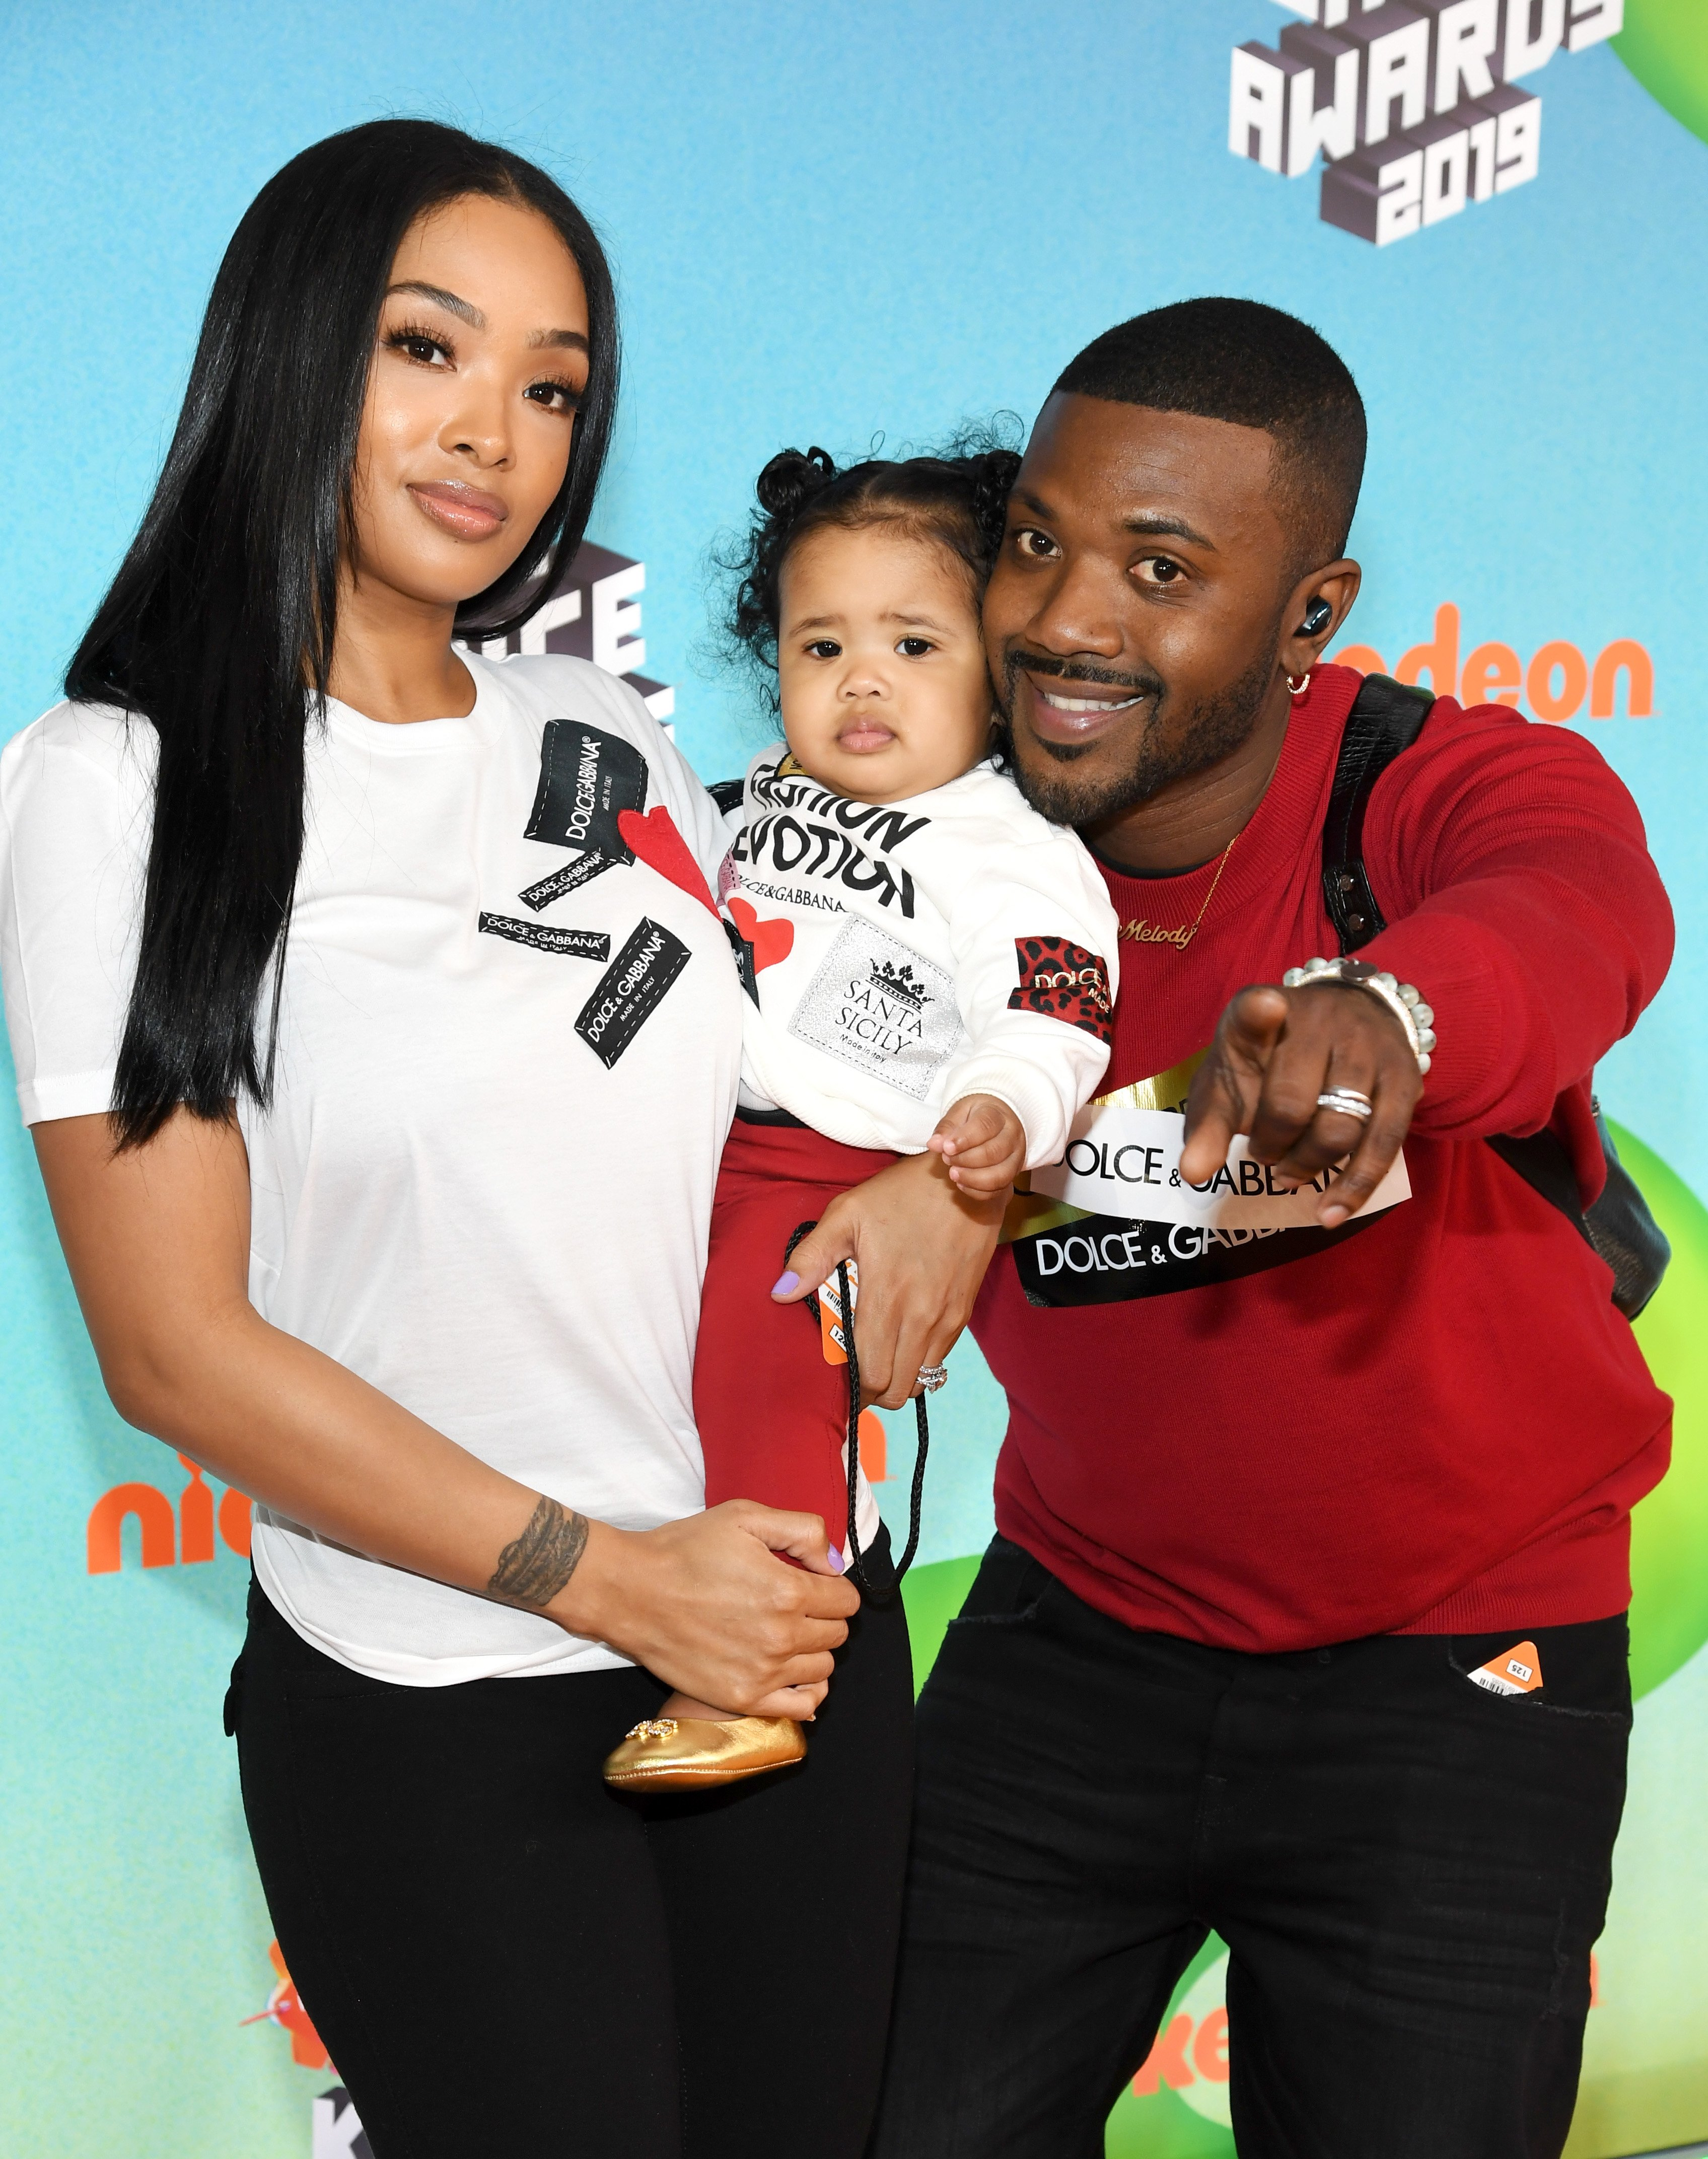 Princess Love, Melody Norwood and Ray J attending the 2019 Kids' Choice Awards in March 2019. | Photo: Getty Images